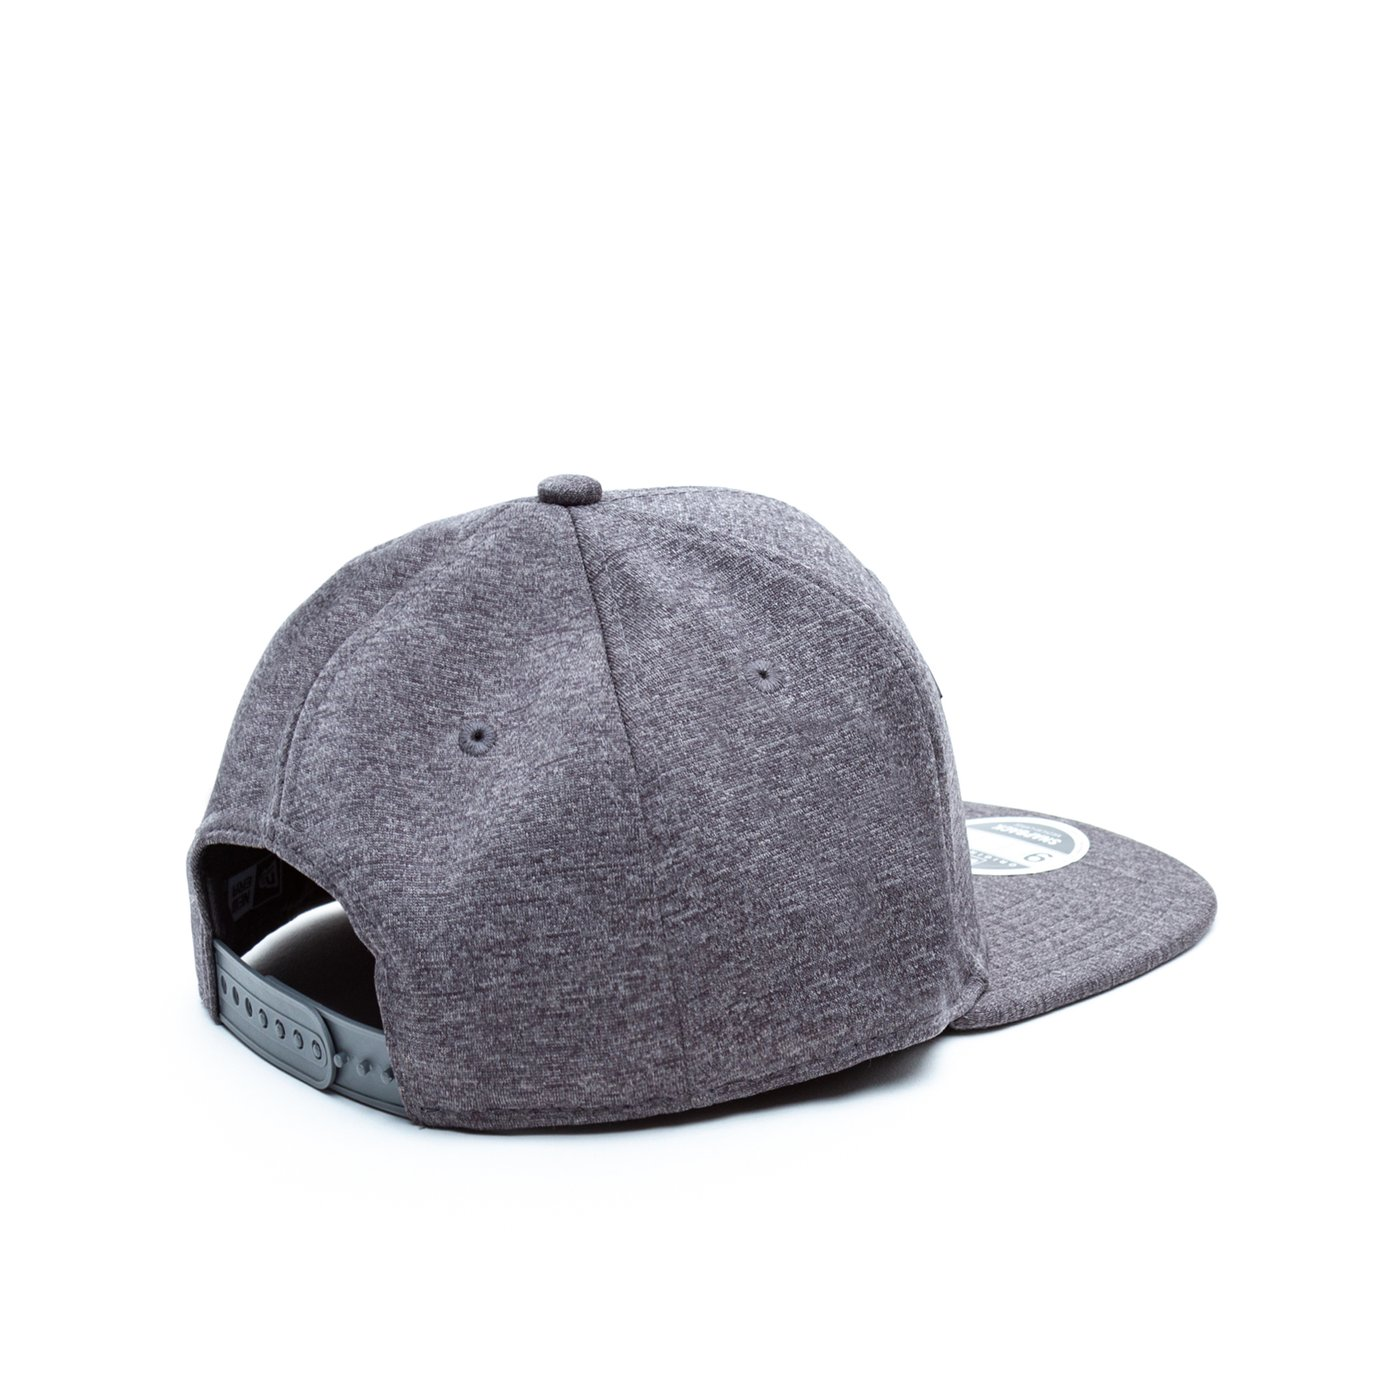 New Era 9Fifty Batman Unisex Gri Şapka